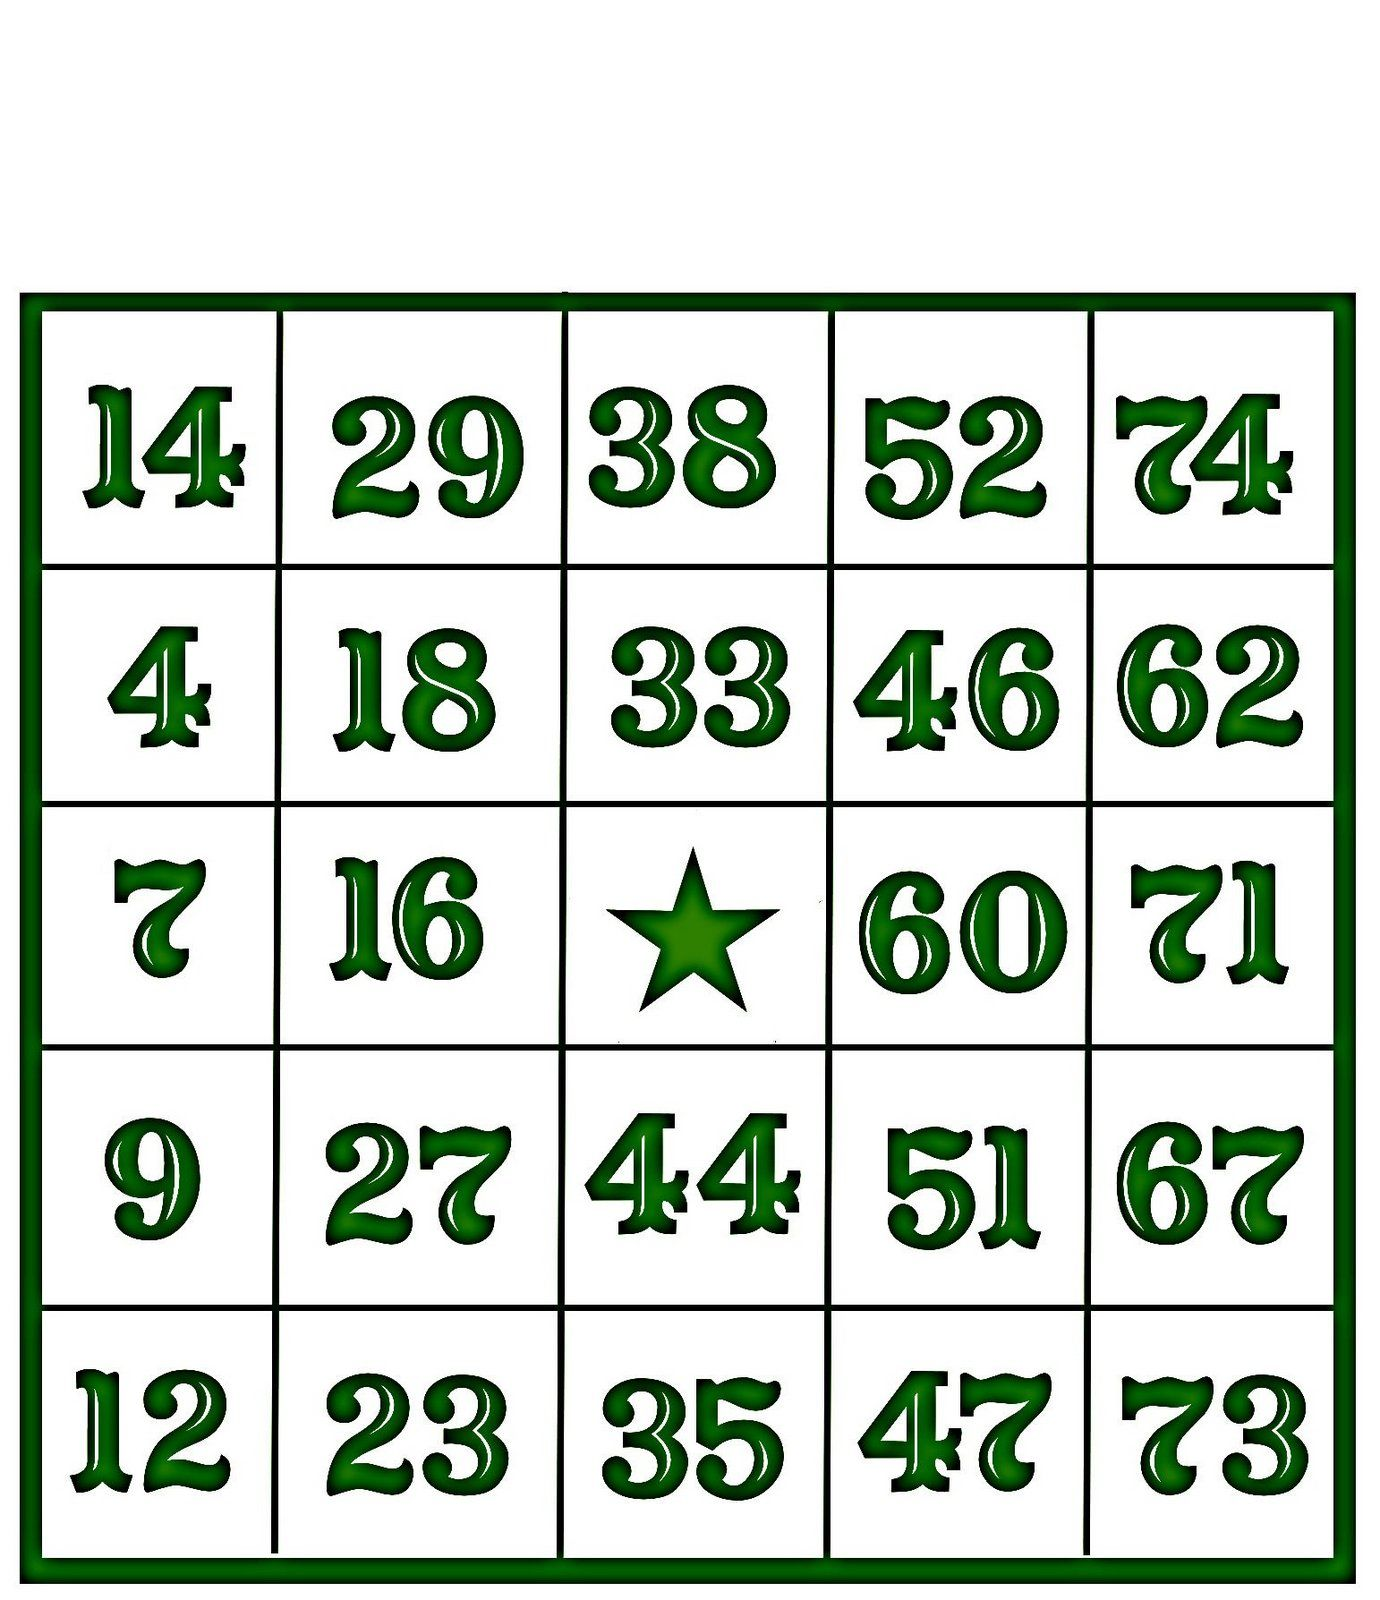 Christine Zani: Bingo Card Printables to Share | Teaching and ...